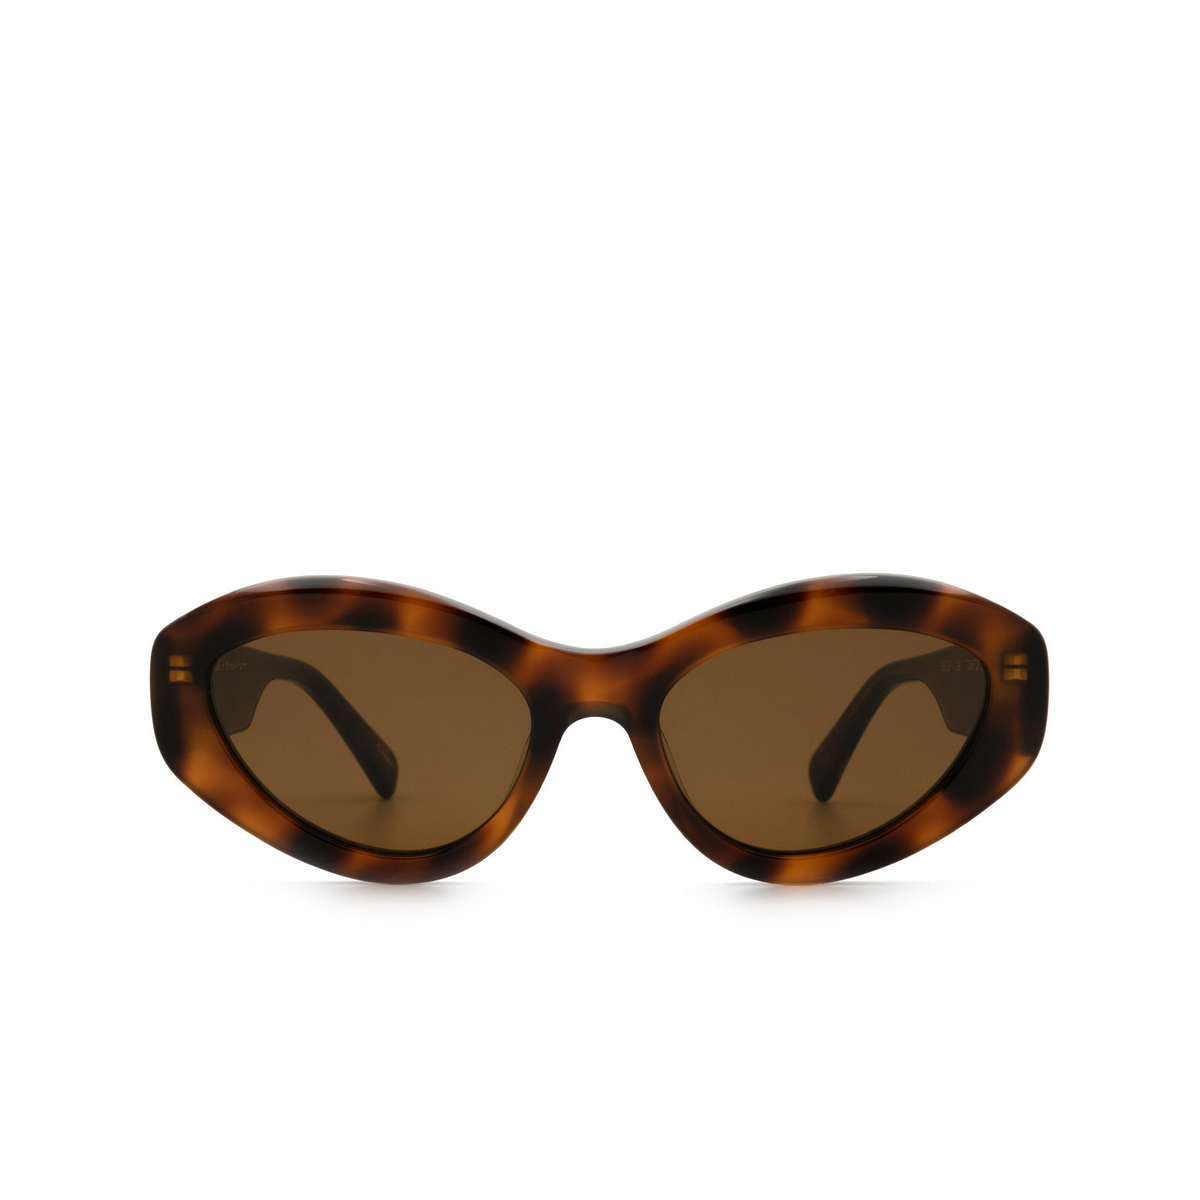 Chimi® Cat-eye Sunglasses: 09 color Tortoise - front view.